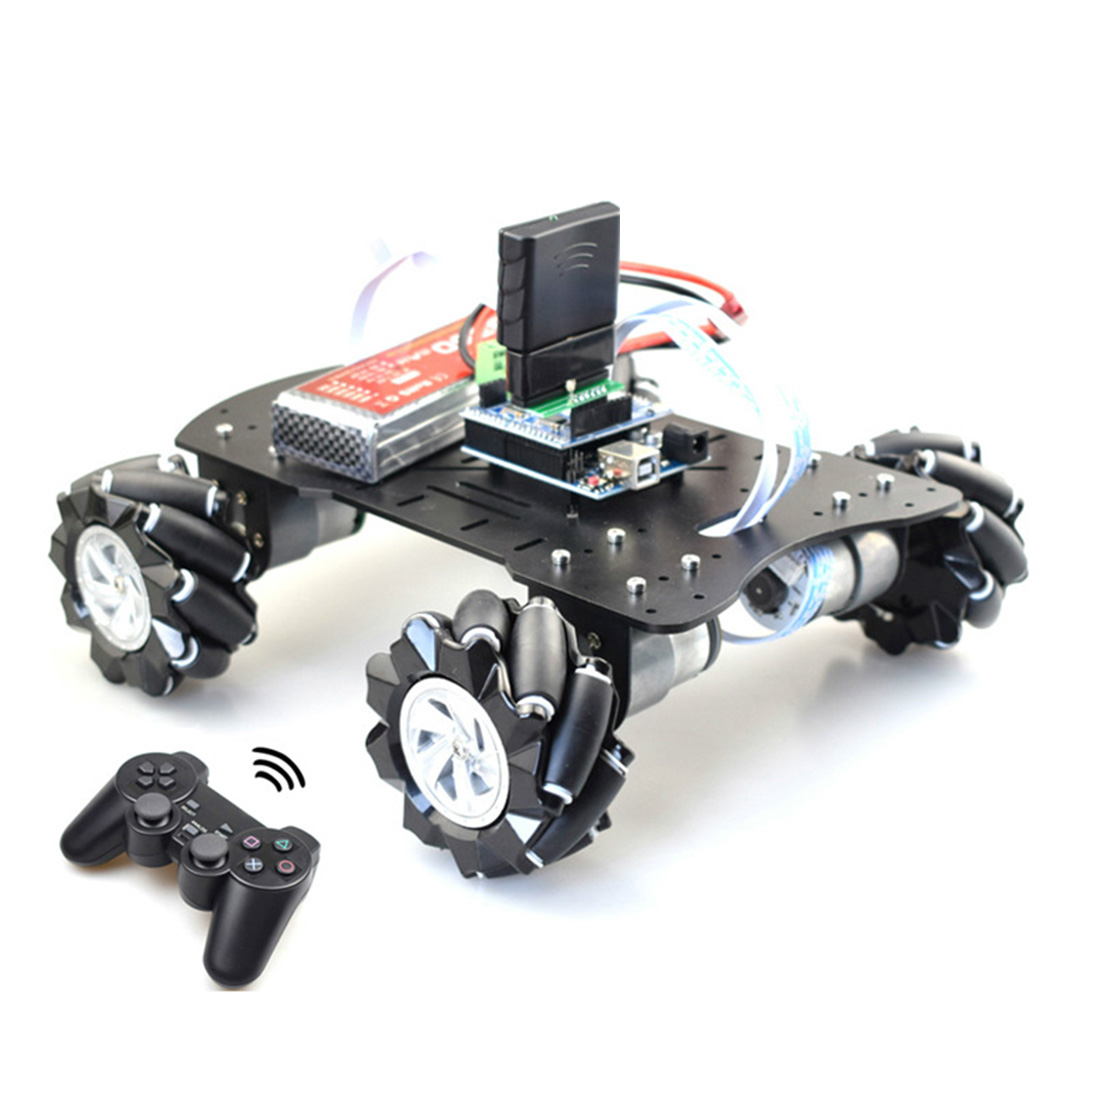 80mm Mecanum Acrylic Platform Omni-Directional Mecanum Wheel Robot Car With For Arduino MEGA Or With STM32 Electronic Control